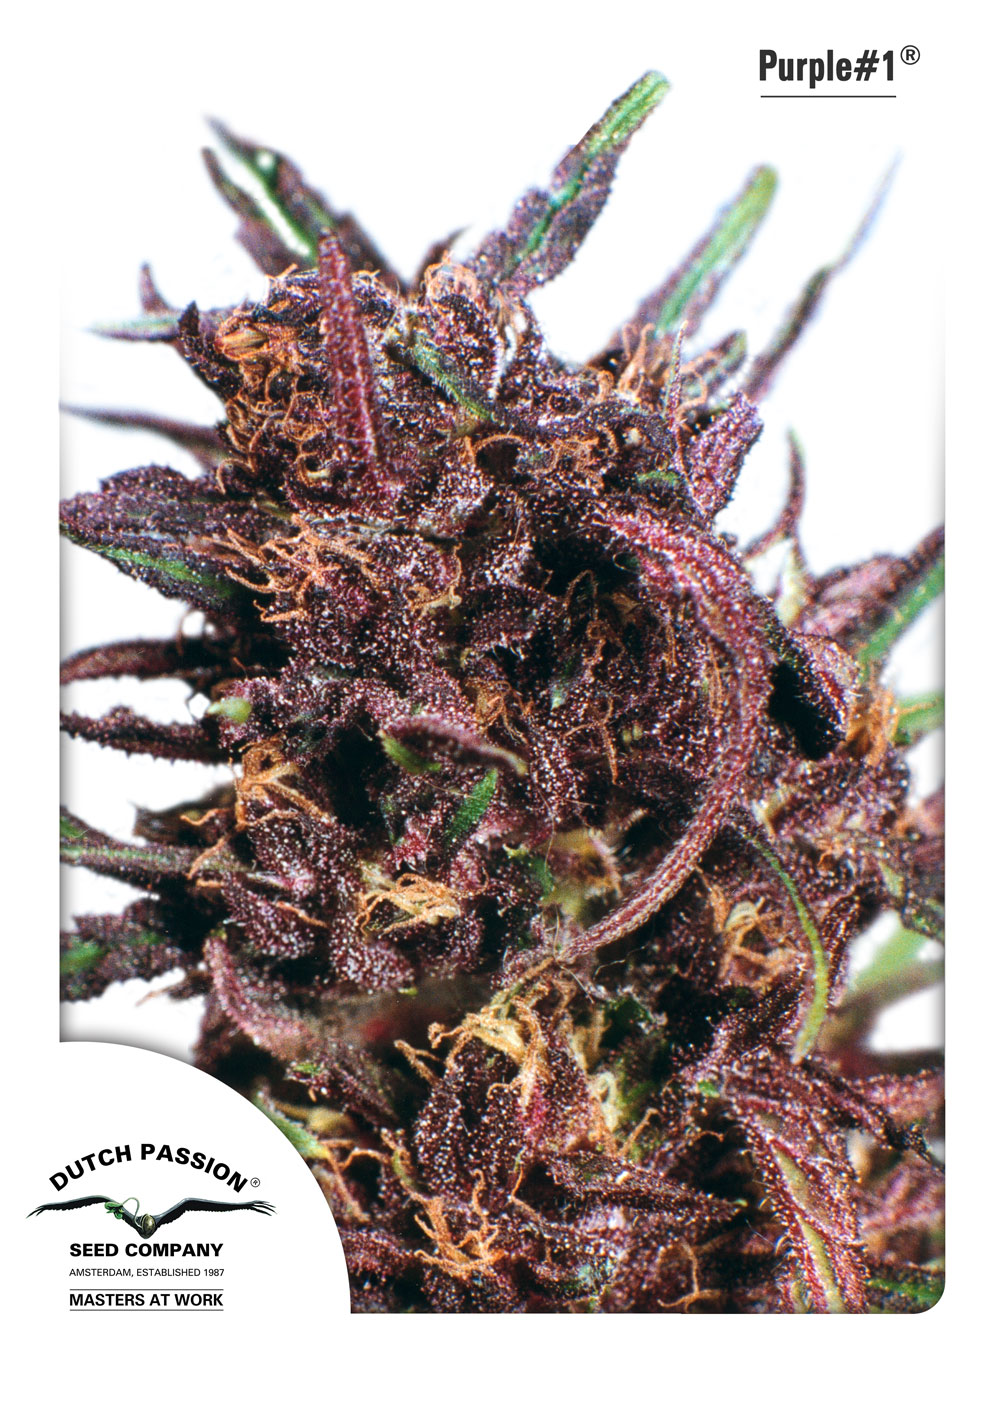 Recenzja Odmiany Purple#1 od Dutch Passion, Dutch Seeds